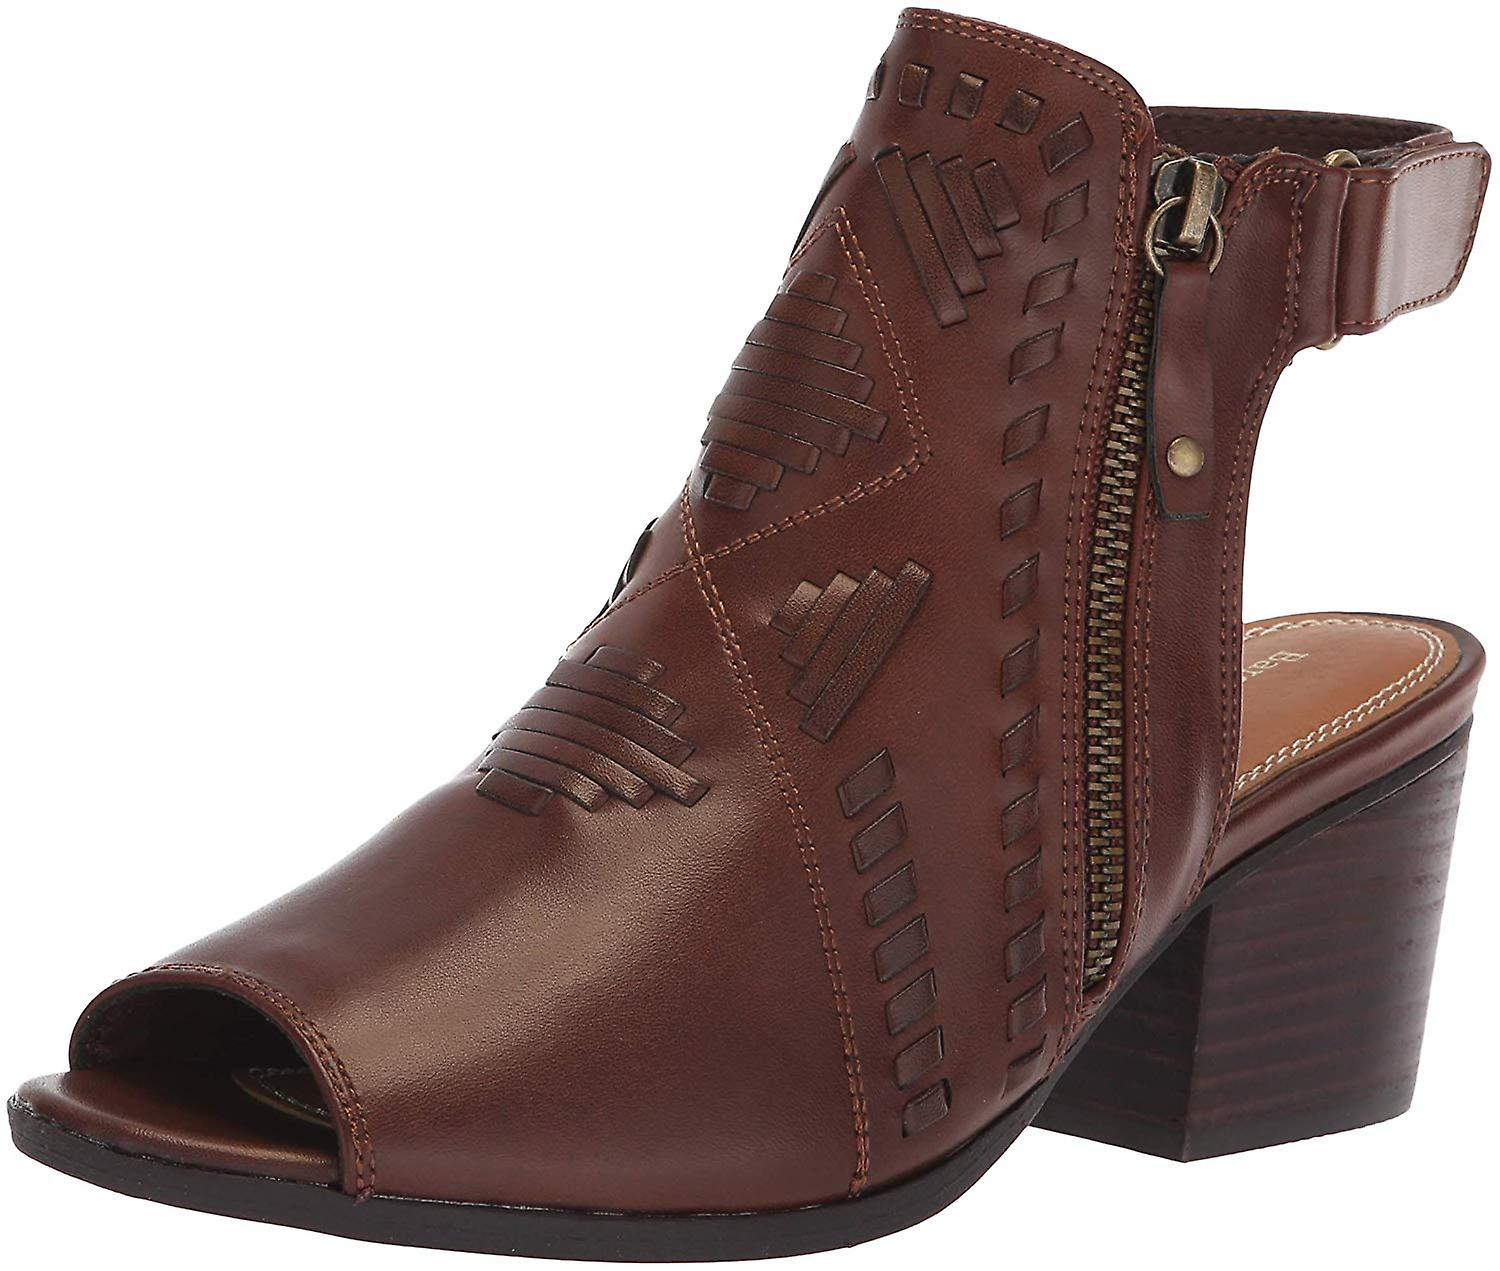 Bare Traps Womens Ivalyn Peep Toe Ankle Fashion Boots hRapA